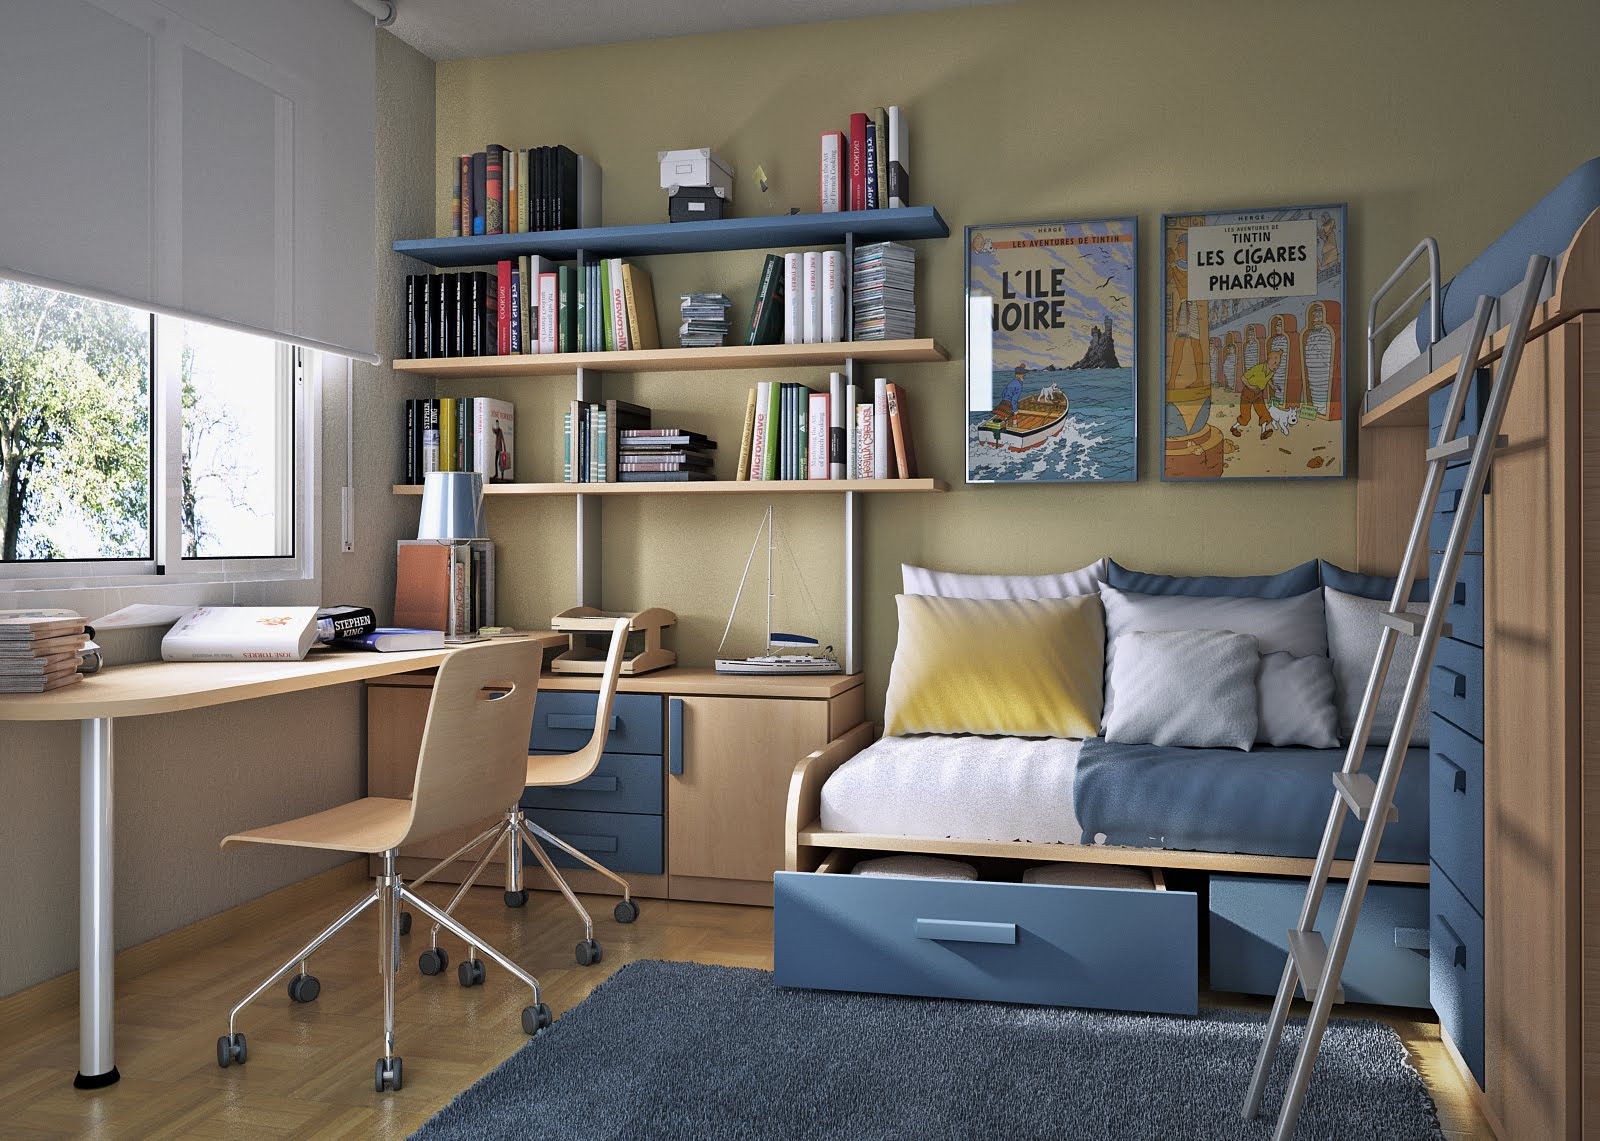 Best ideas about Small Kids Room . Save or Pin Small Floorspace Kids Rooms Now.